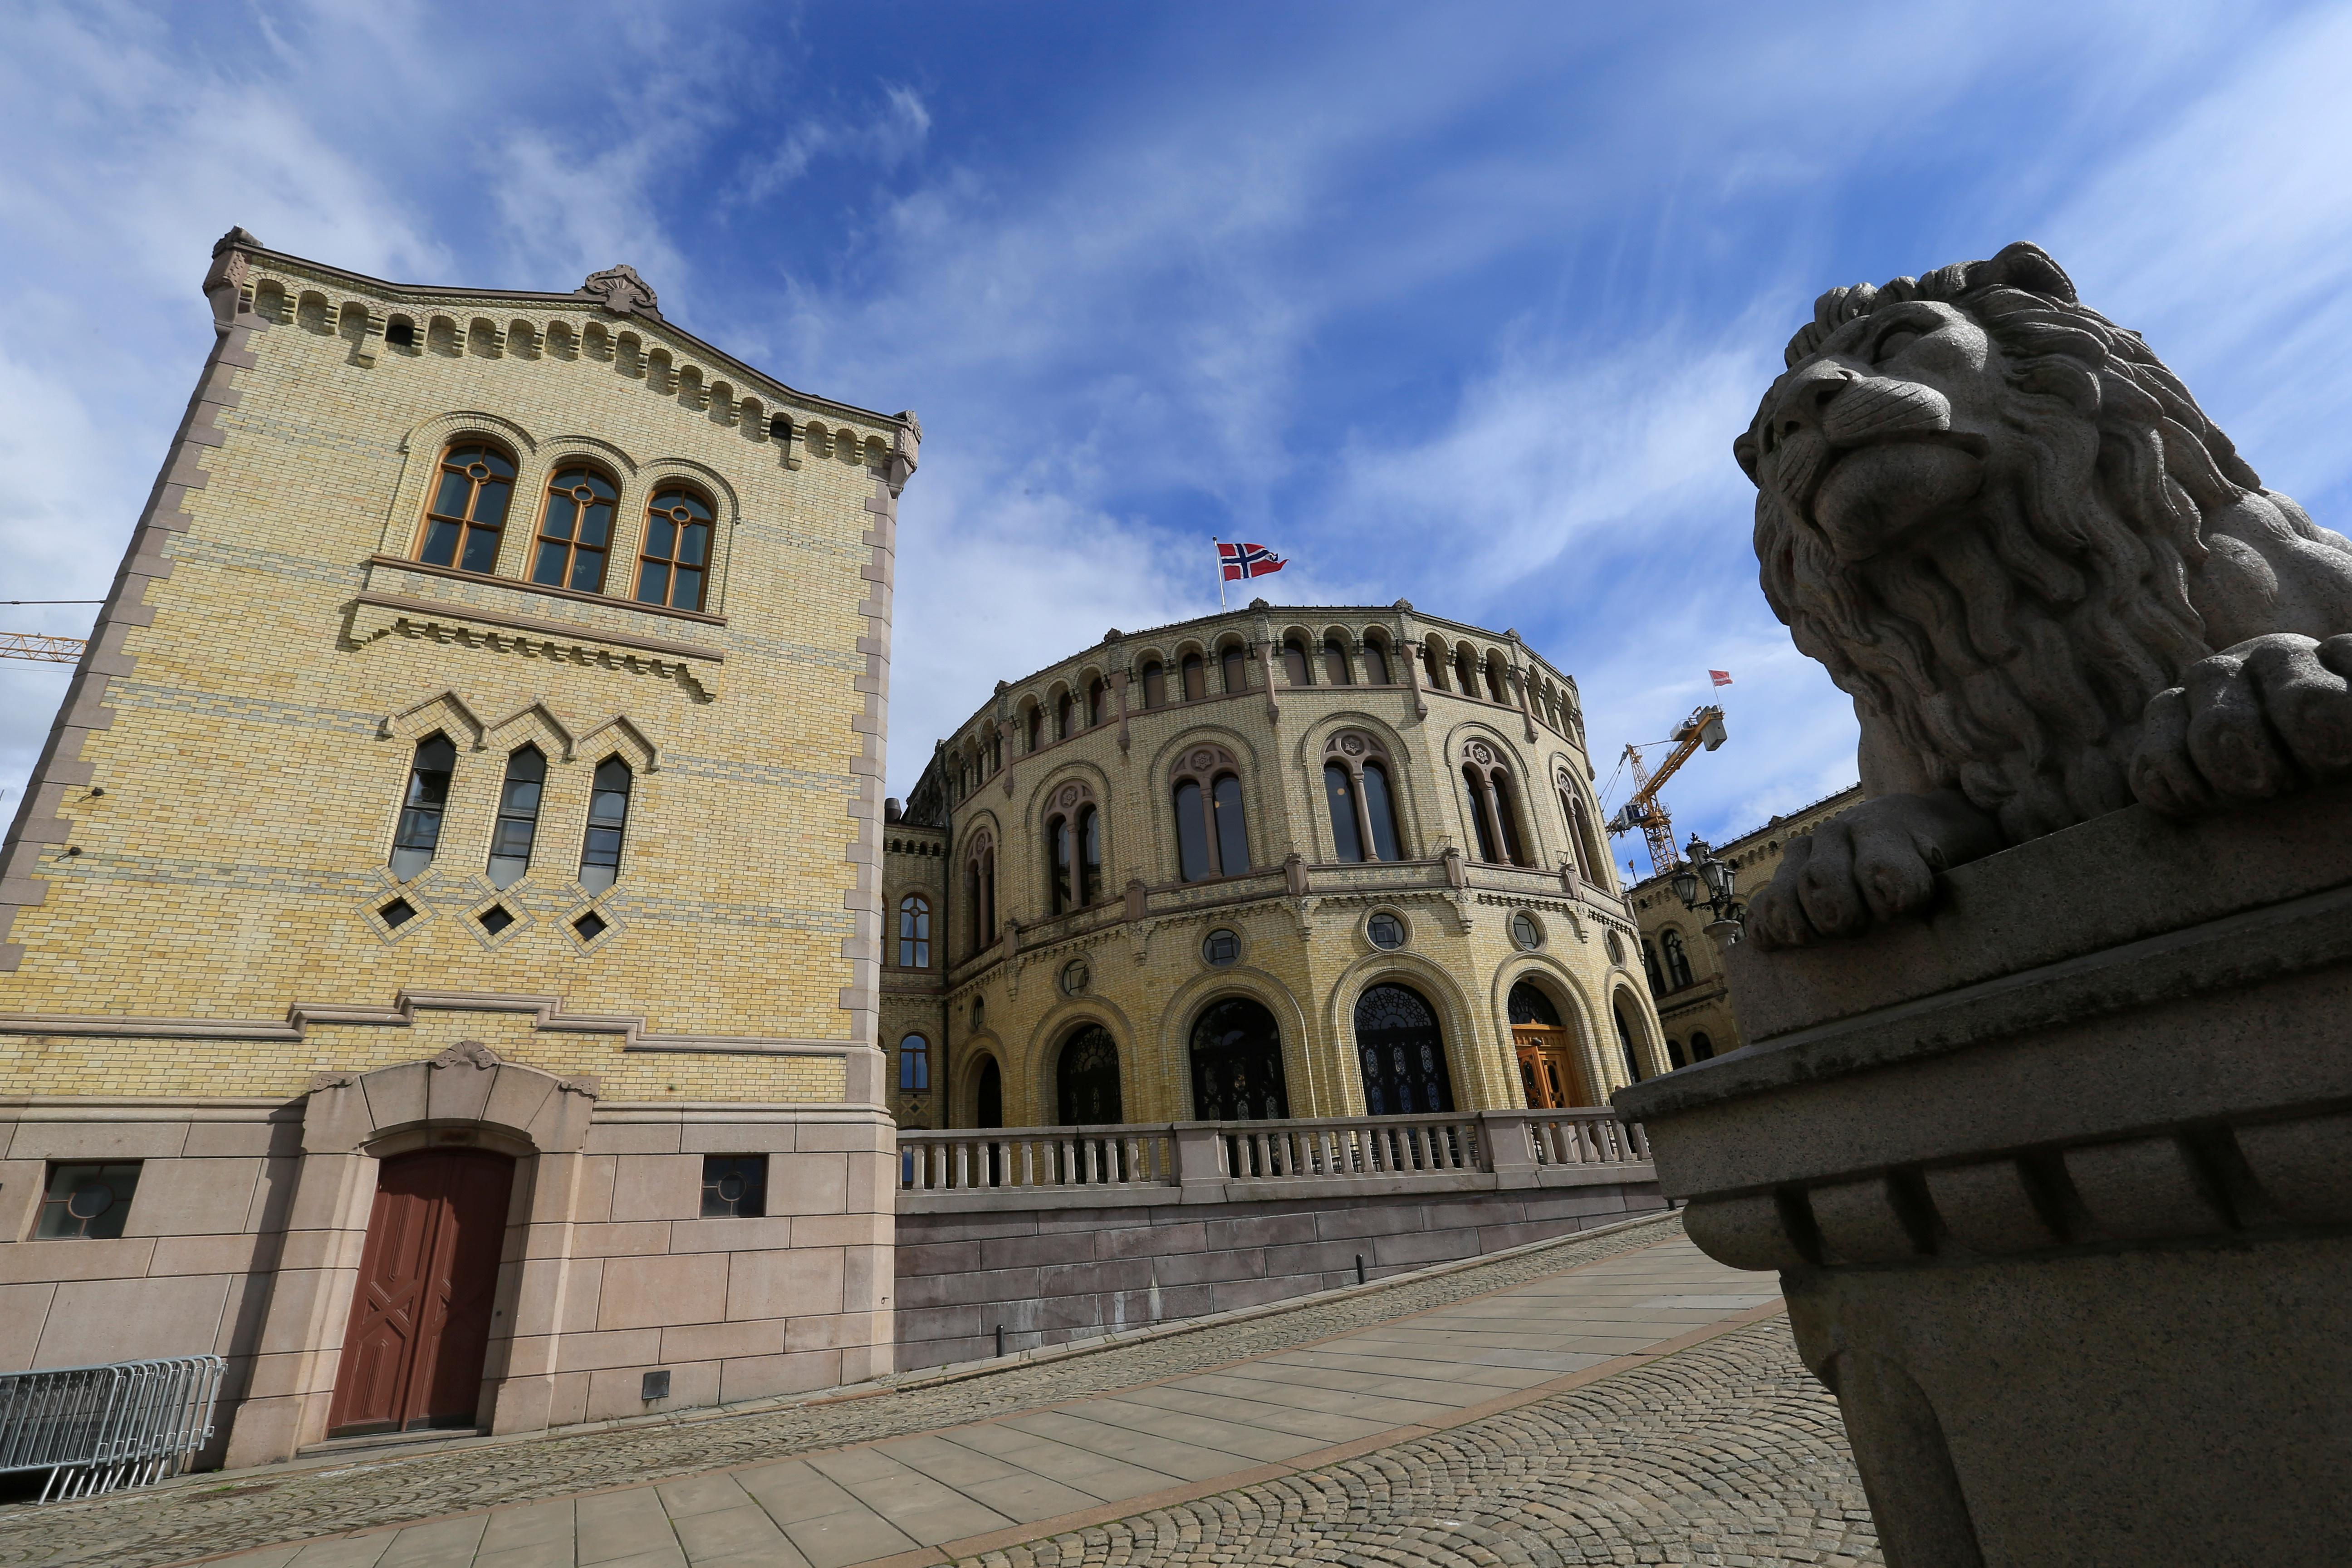 Norway's parliament says it was hit by 'significant' cyber attack